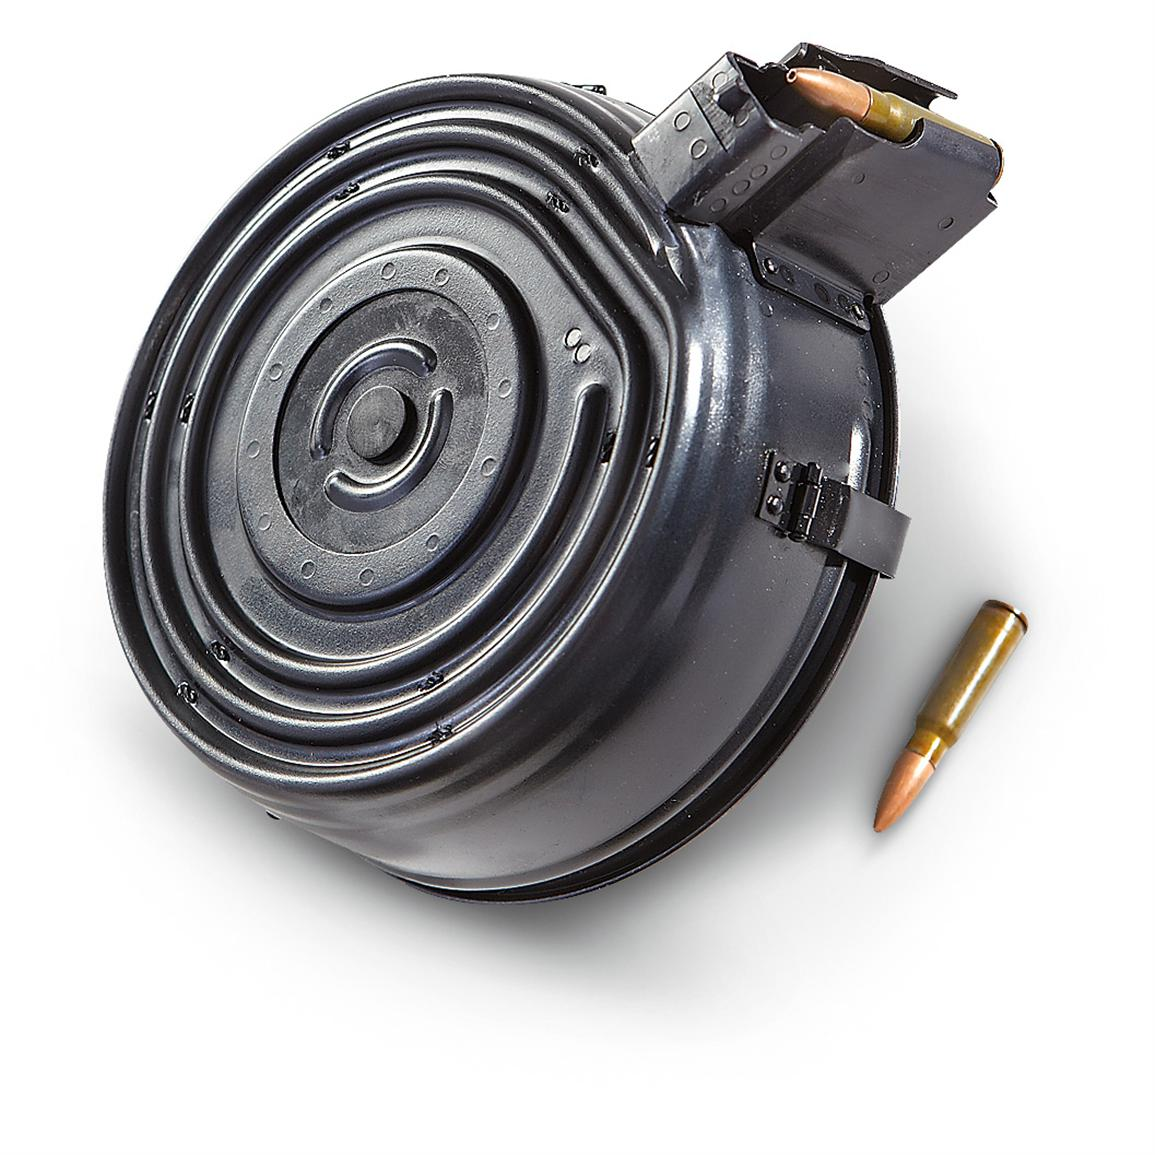 AK-47 Drum Magazine, 75 Rounds • Fire away with 75 rds. at the ready!